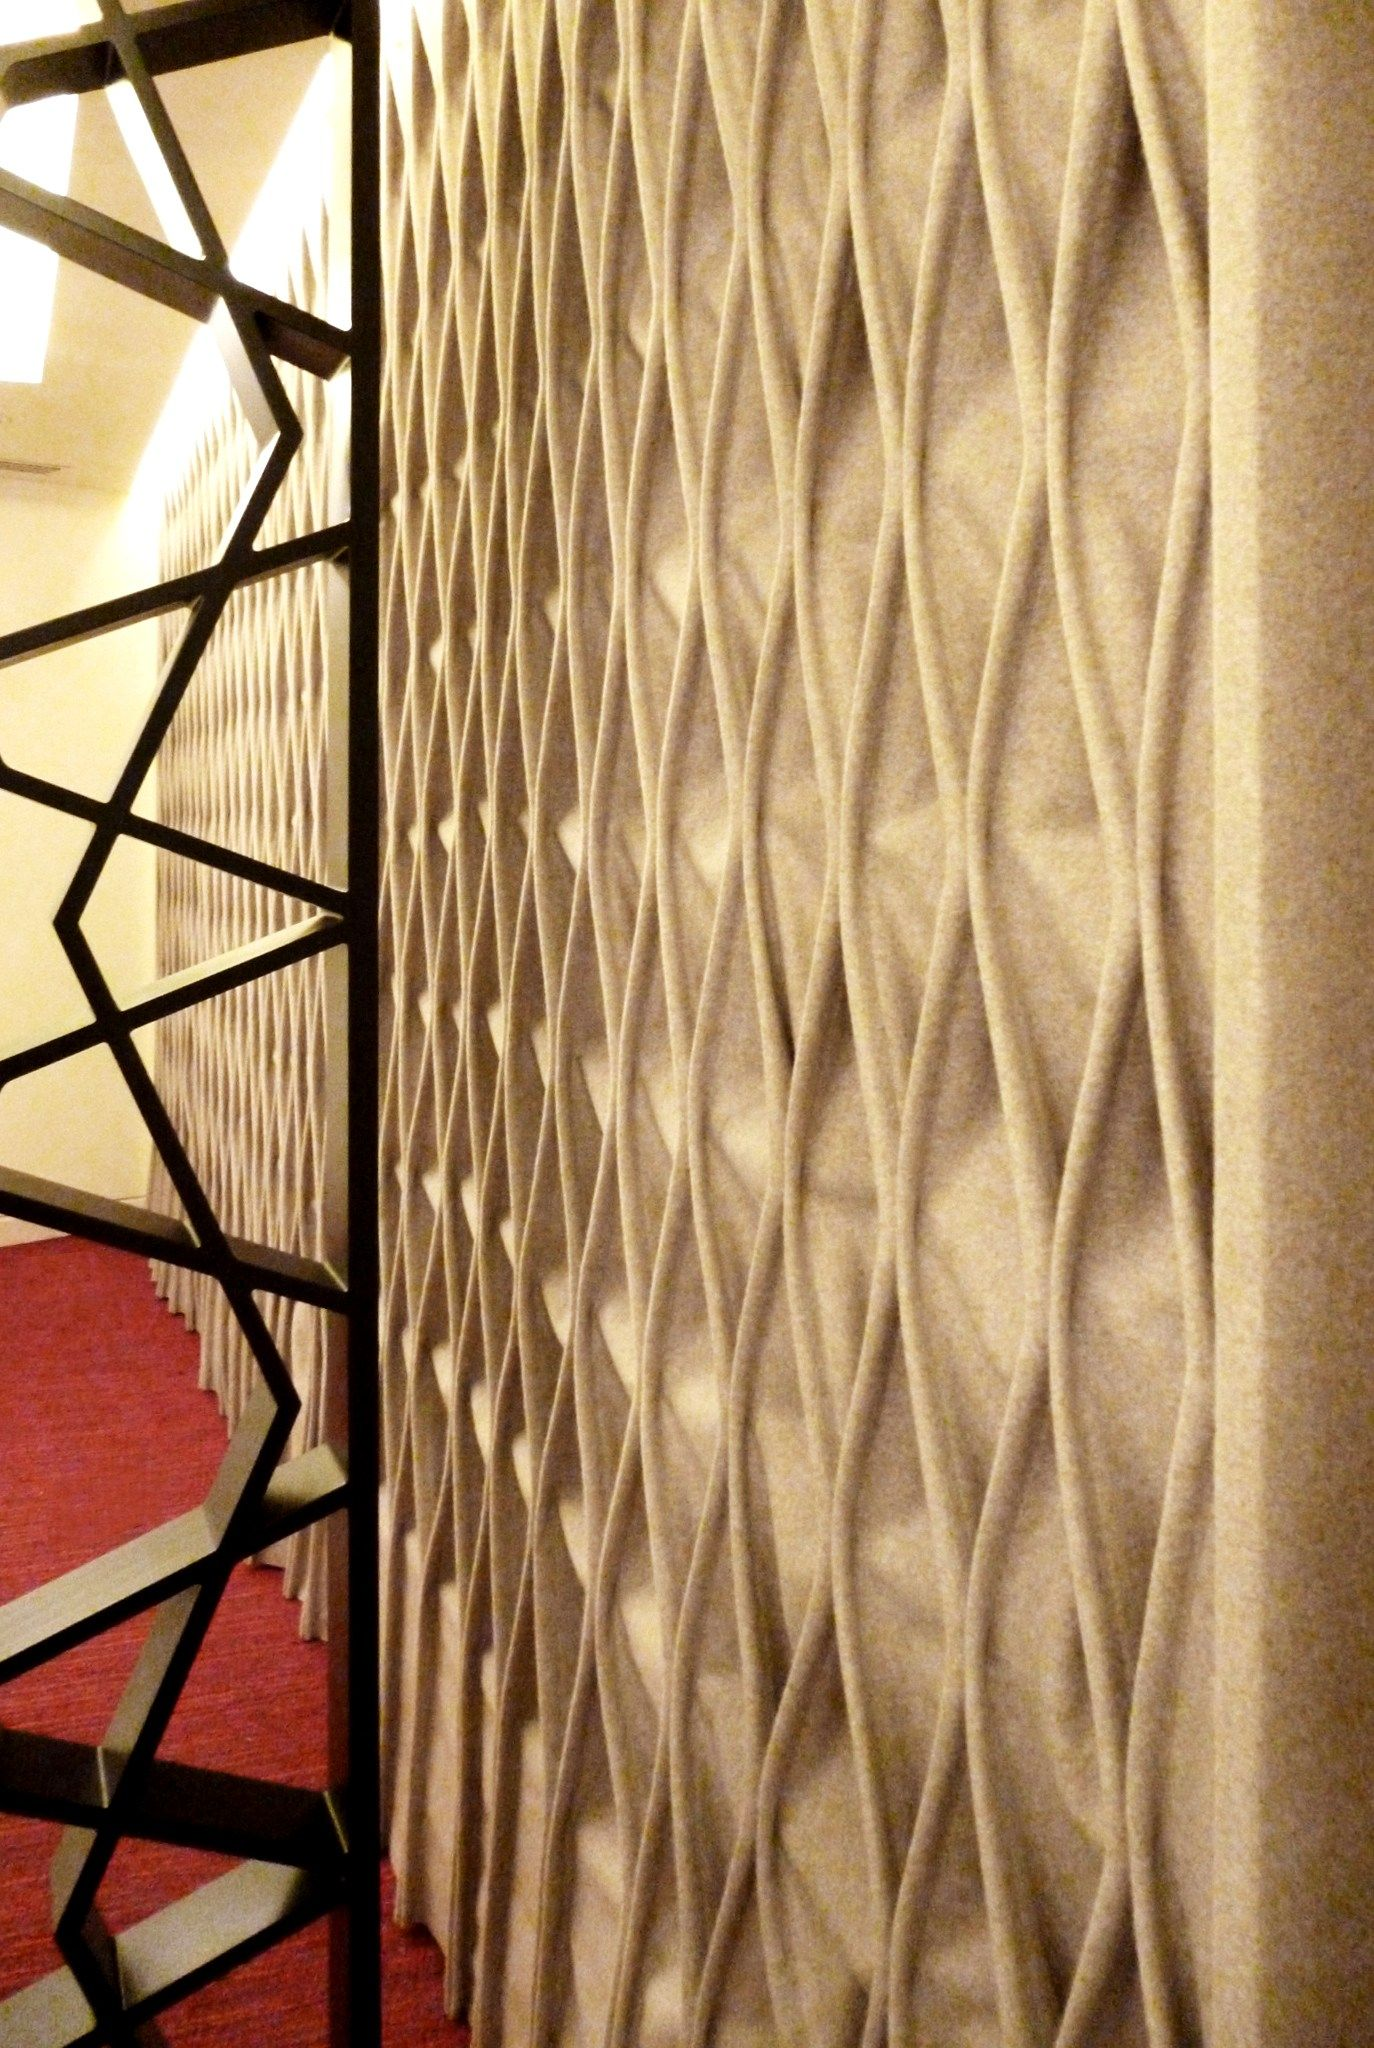 Luxury Decorative Acoustic Wall Tiles Component - The Wall Art ...